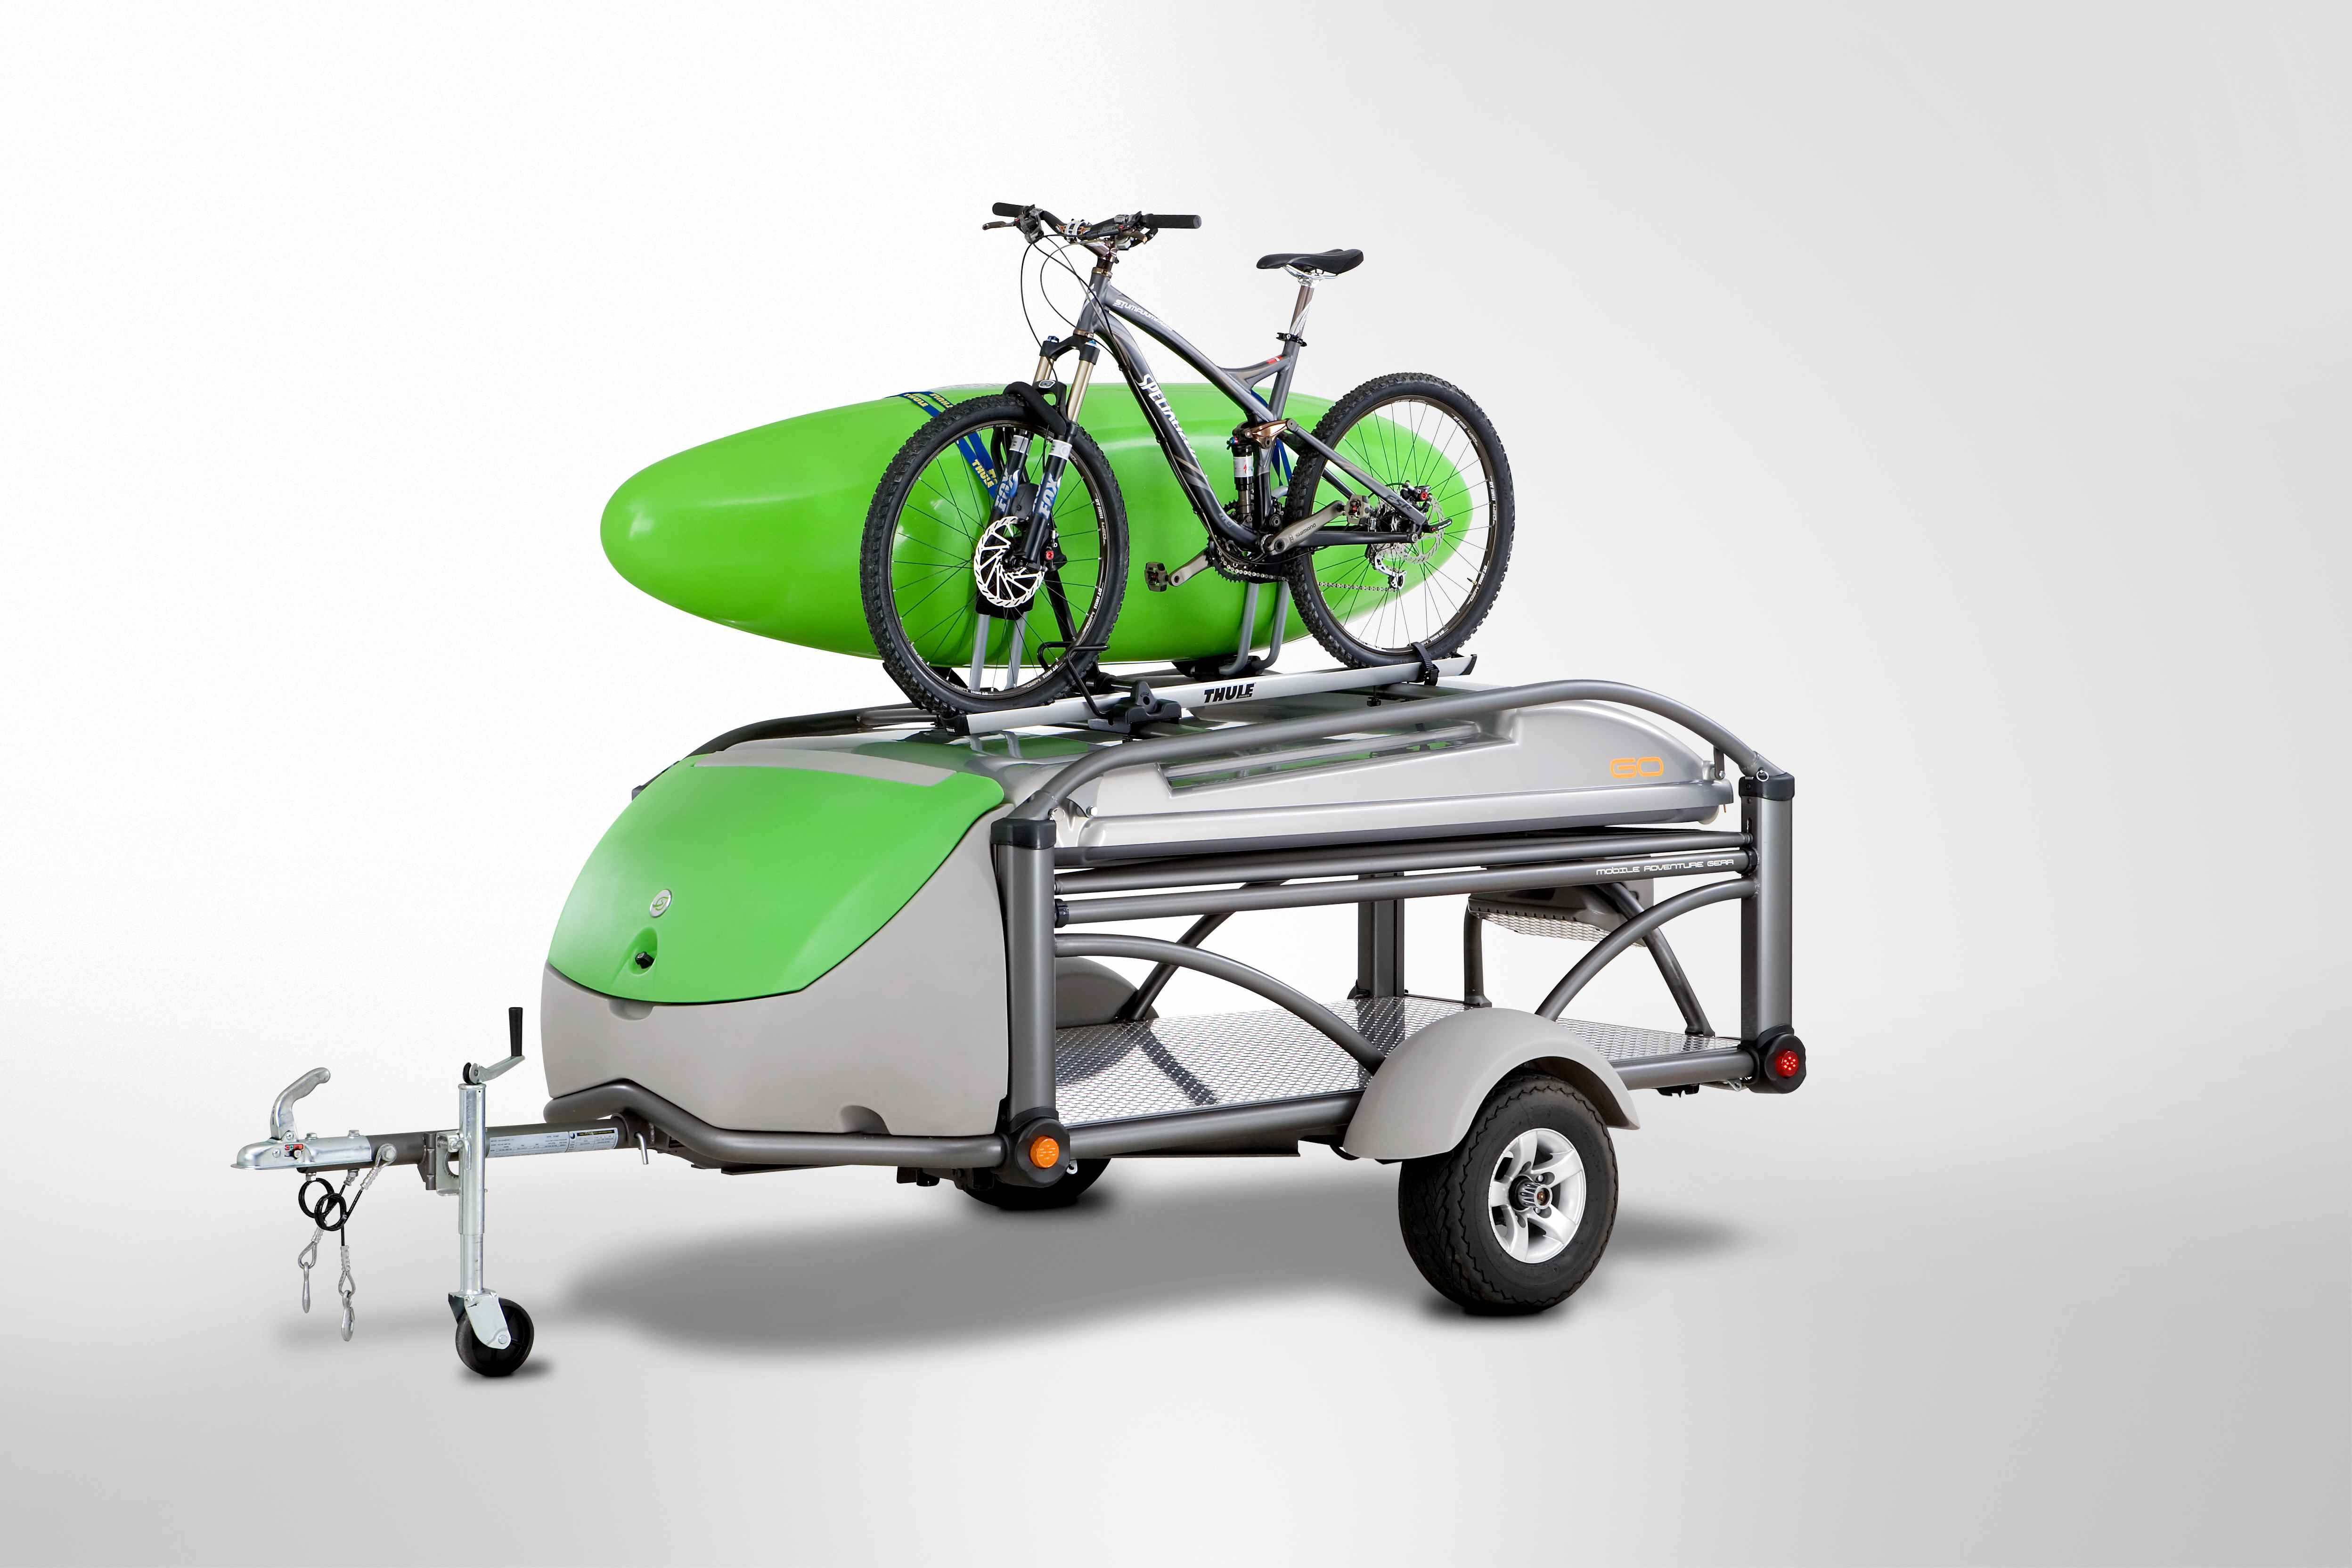 The SylvanSport GO in transport mode